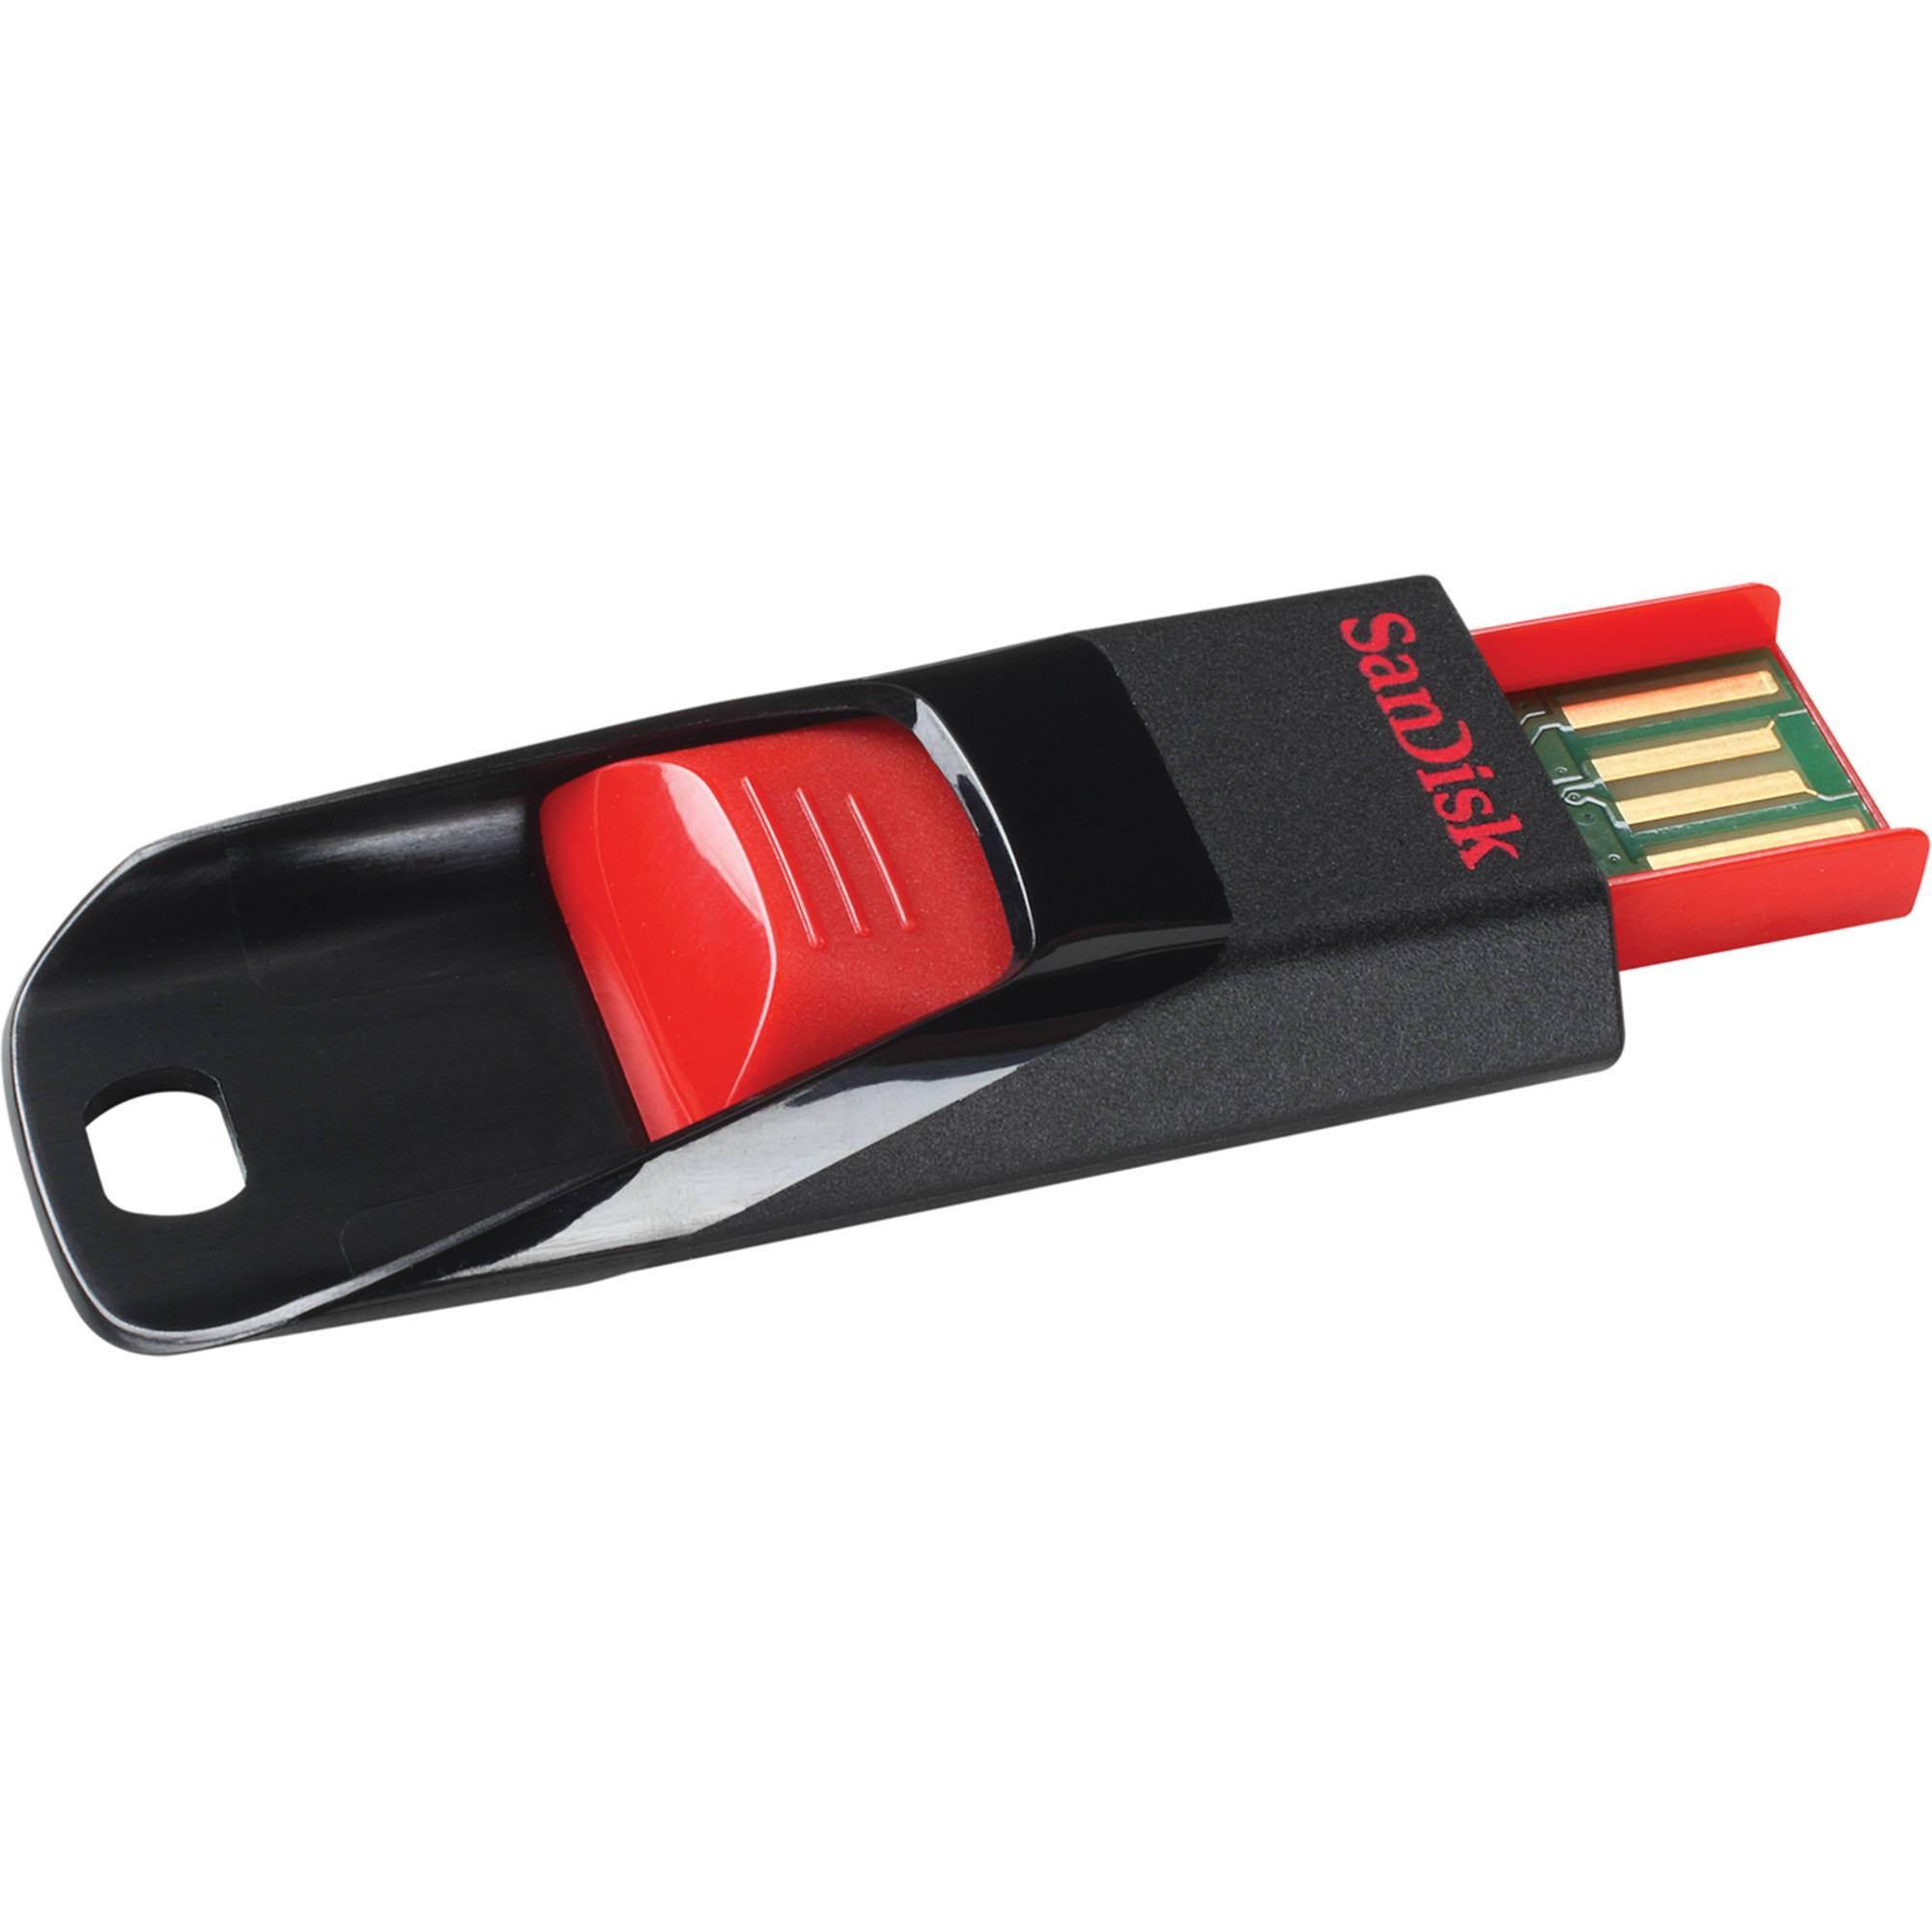 SANDISK-USB-Flash-Drives-Cruzer-Edge1.jpg